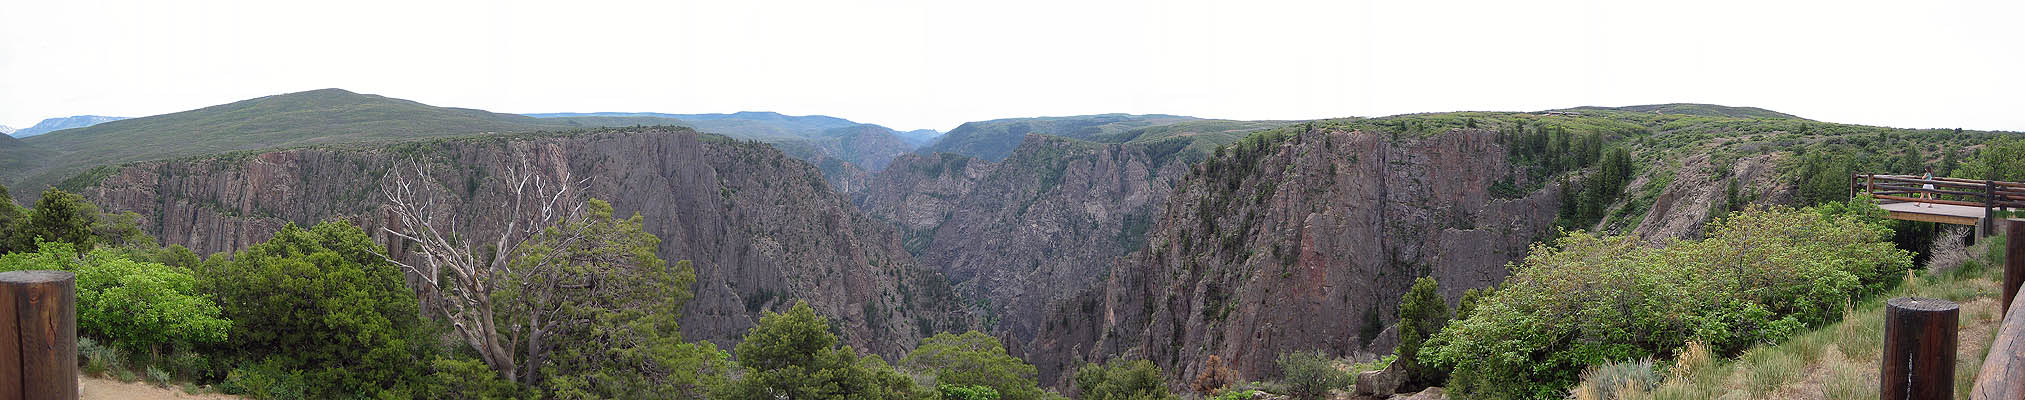 Telluride 2006: Black Canyon Panoramic View